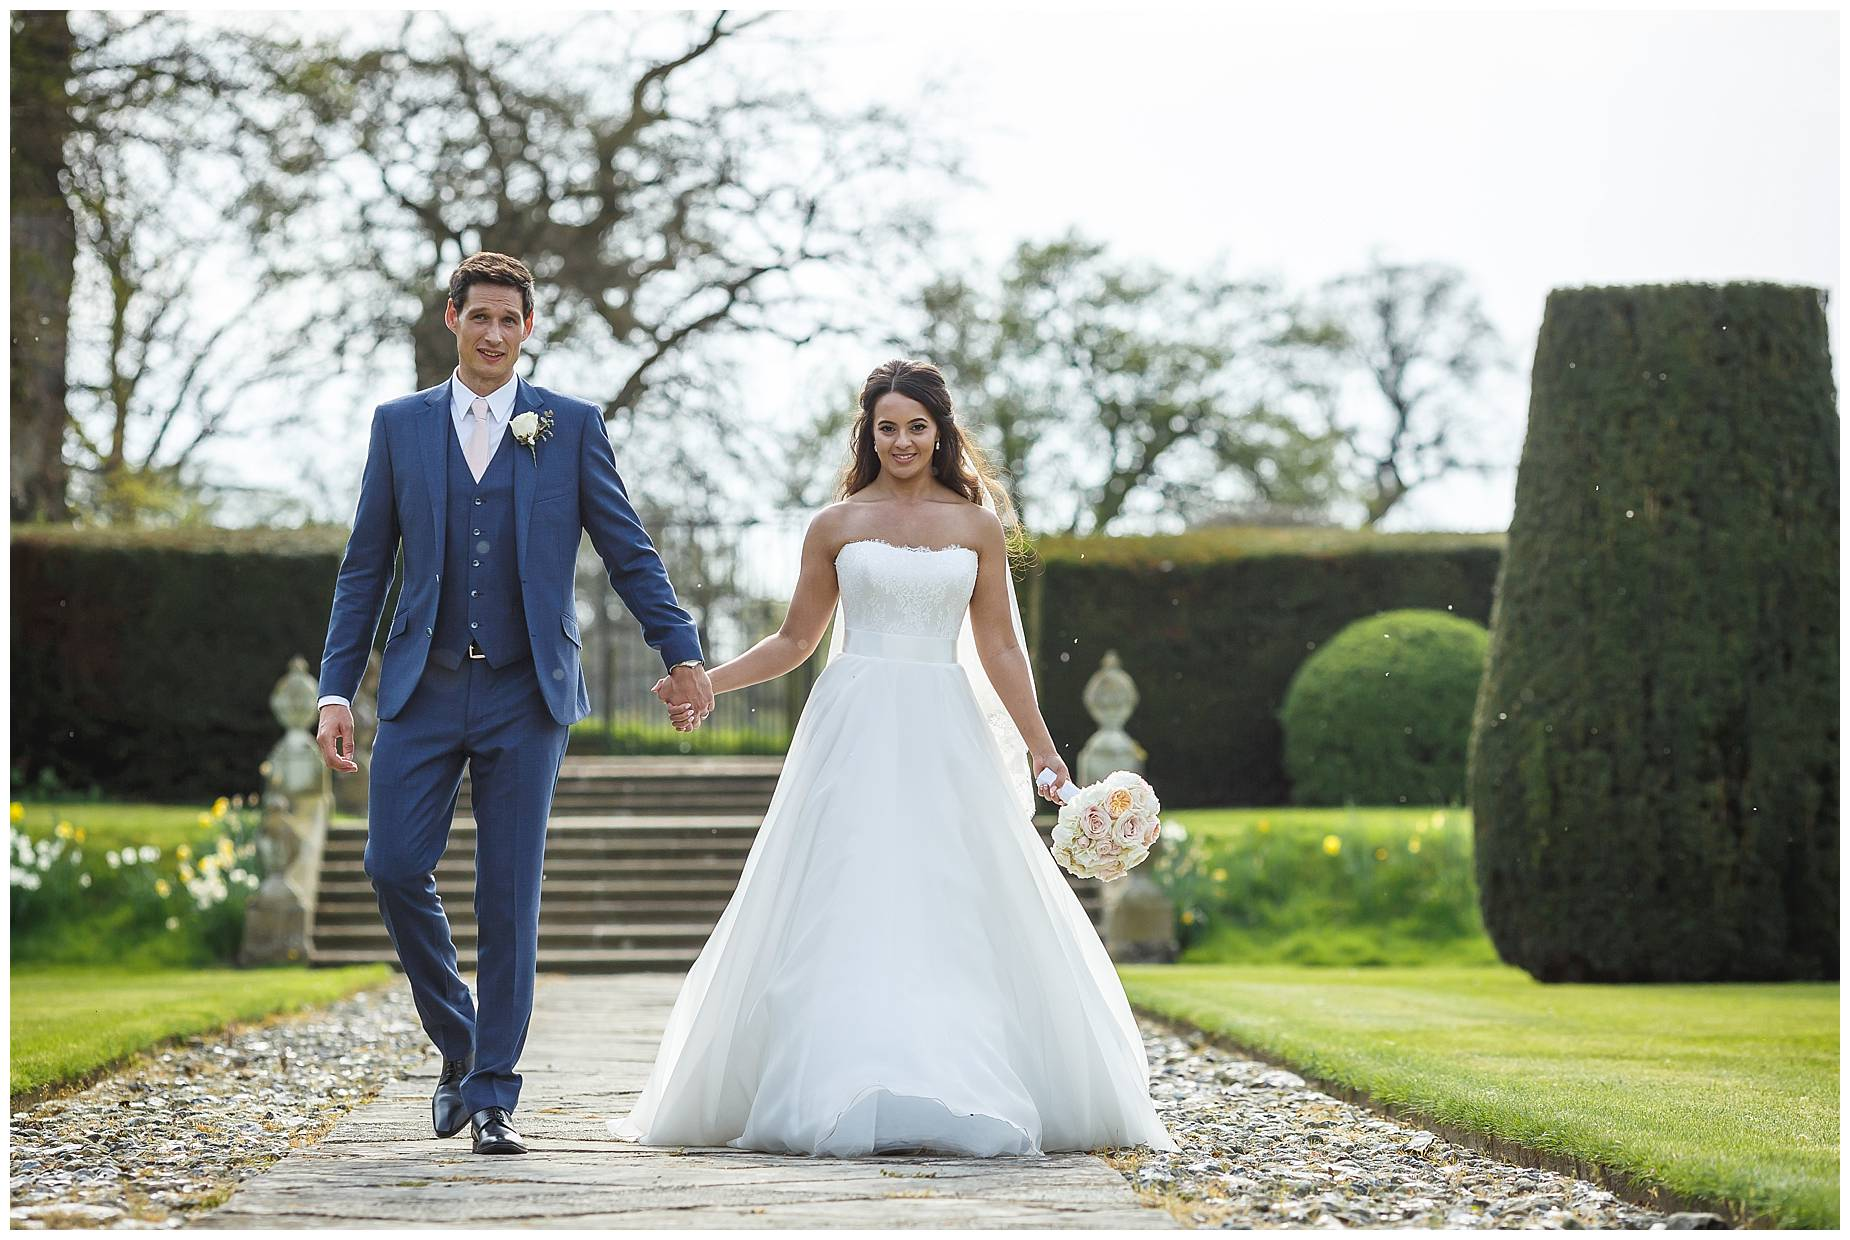 Wedding Hengrave Hall bride and groom walking